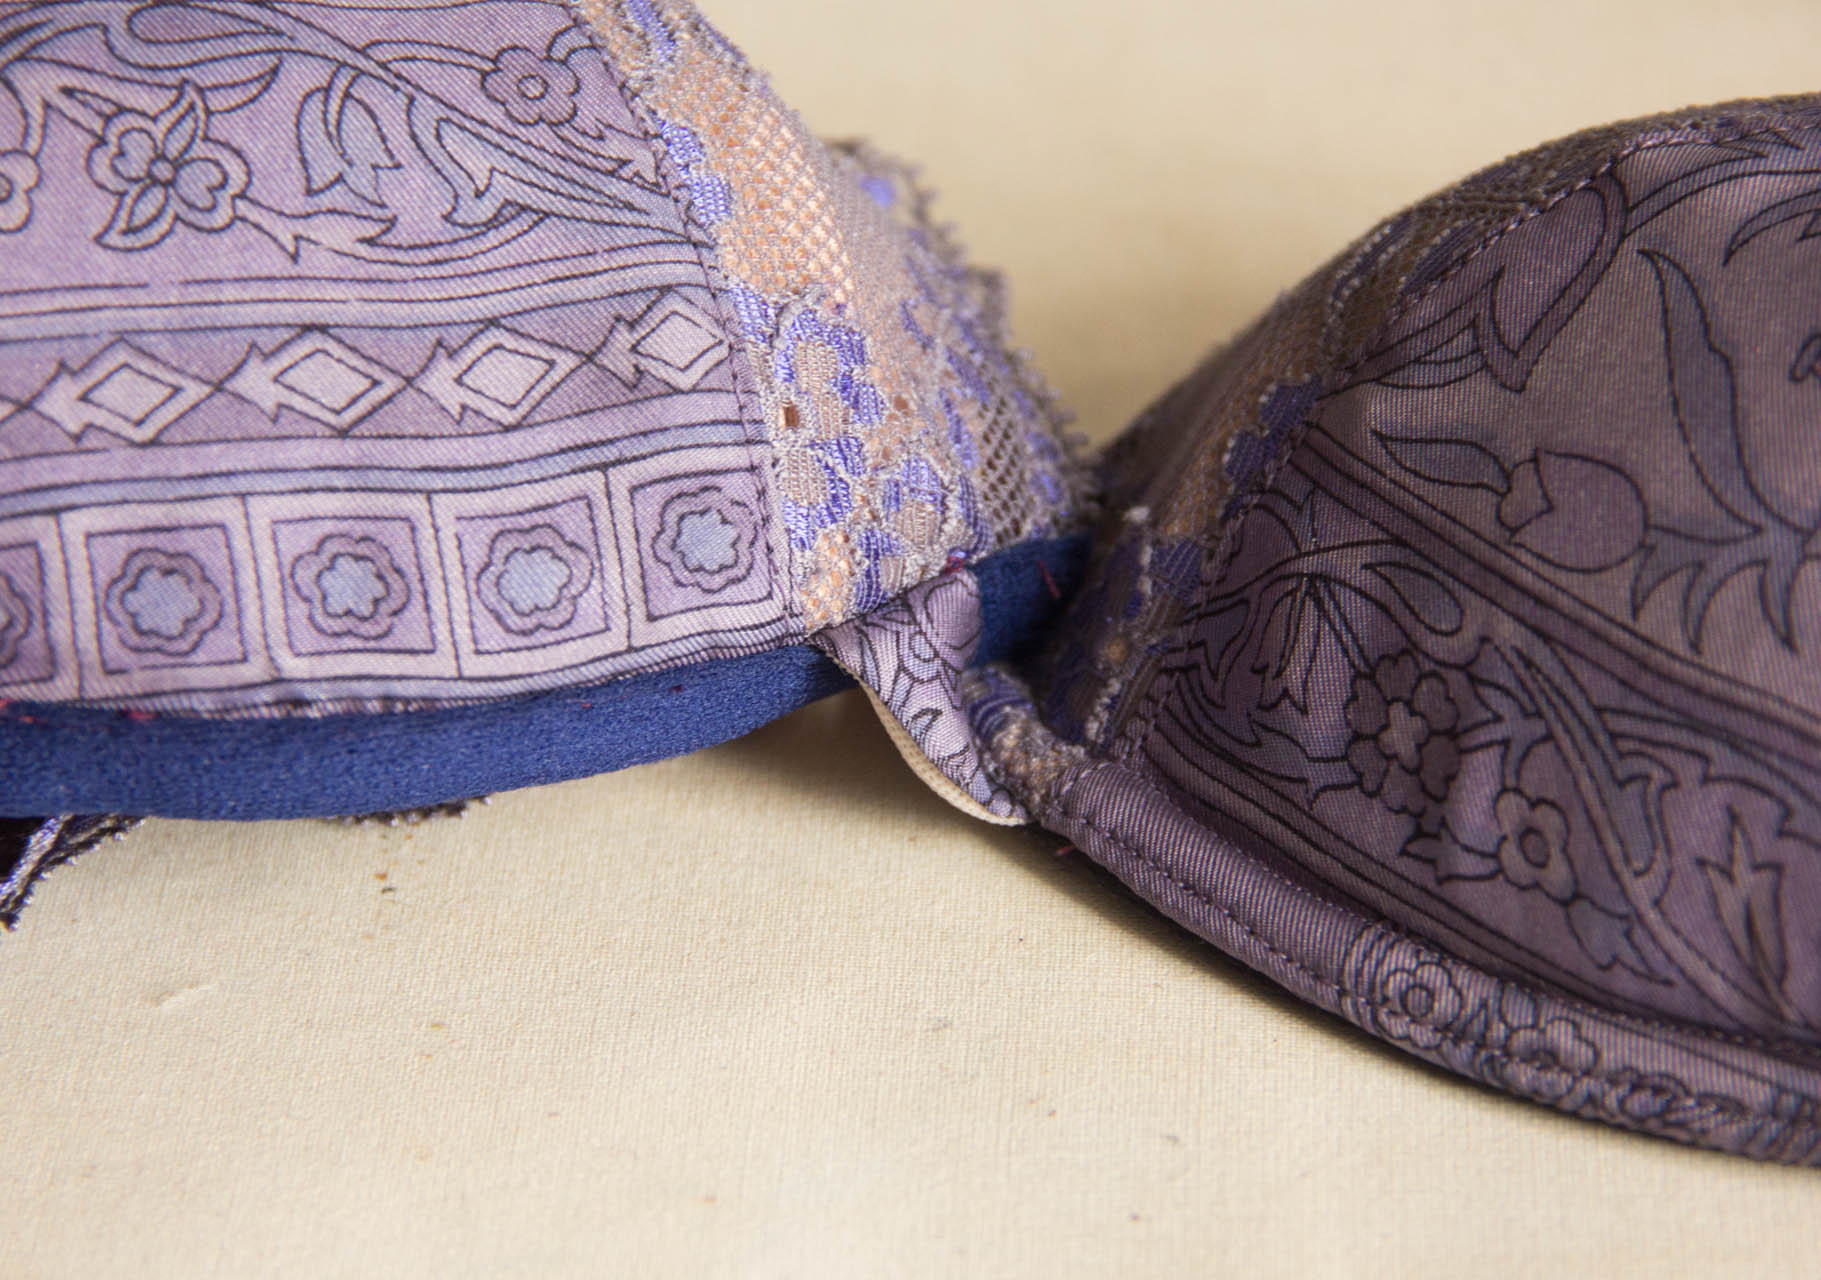 On the right, the cup topstitched with two rows of stitching, which holds the channelling under the cup. On the left, the channelling is attached but not yet topstitched.